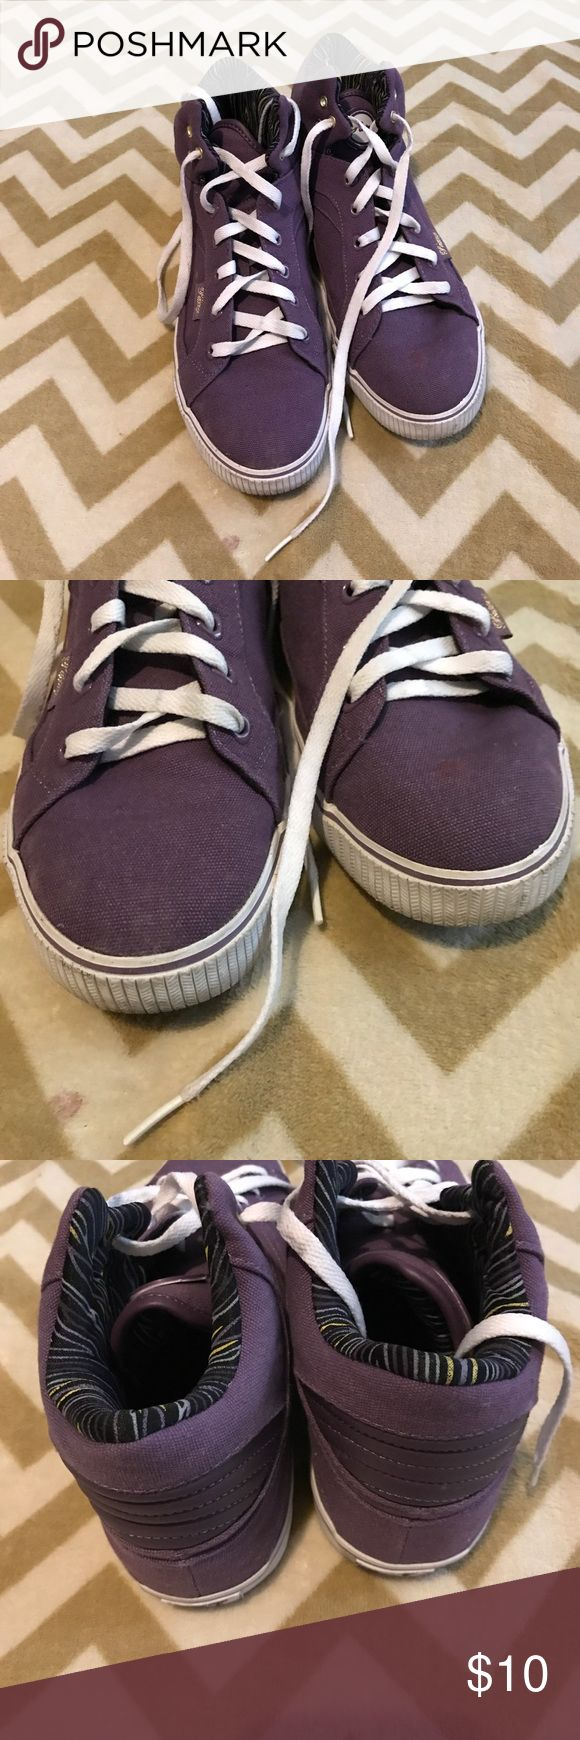 Women's Purple Pastry Sneakers size 10 Used but in good condition some wear in the front of the sneaker as shown in the picture. Canvas sneakers Pastry Shoes Sneakers